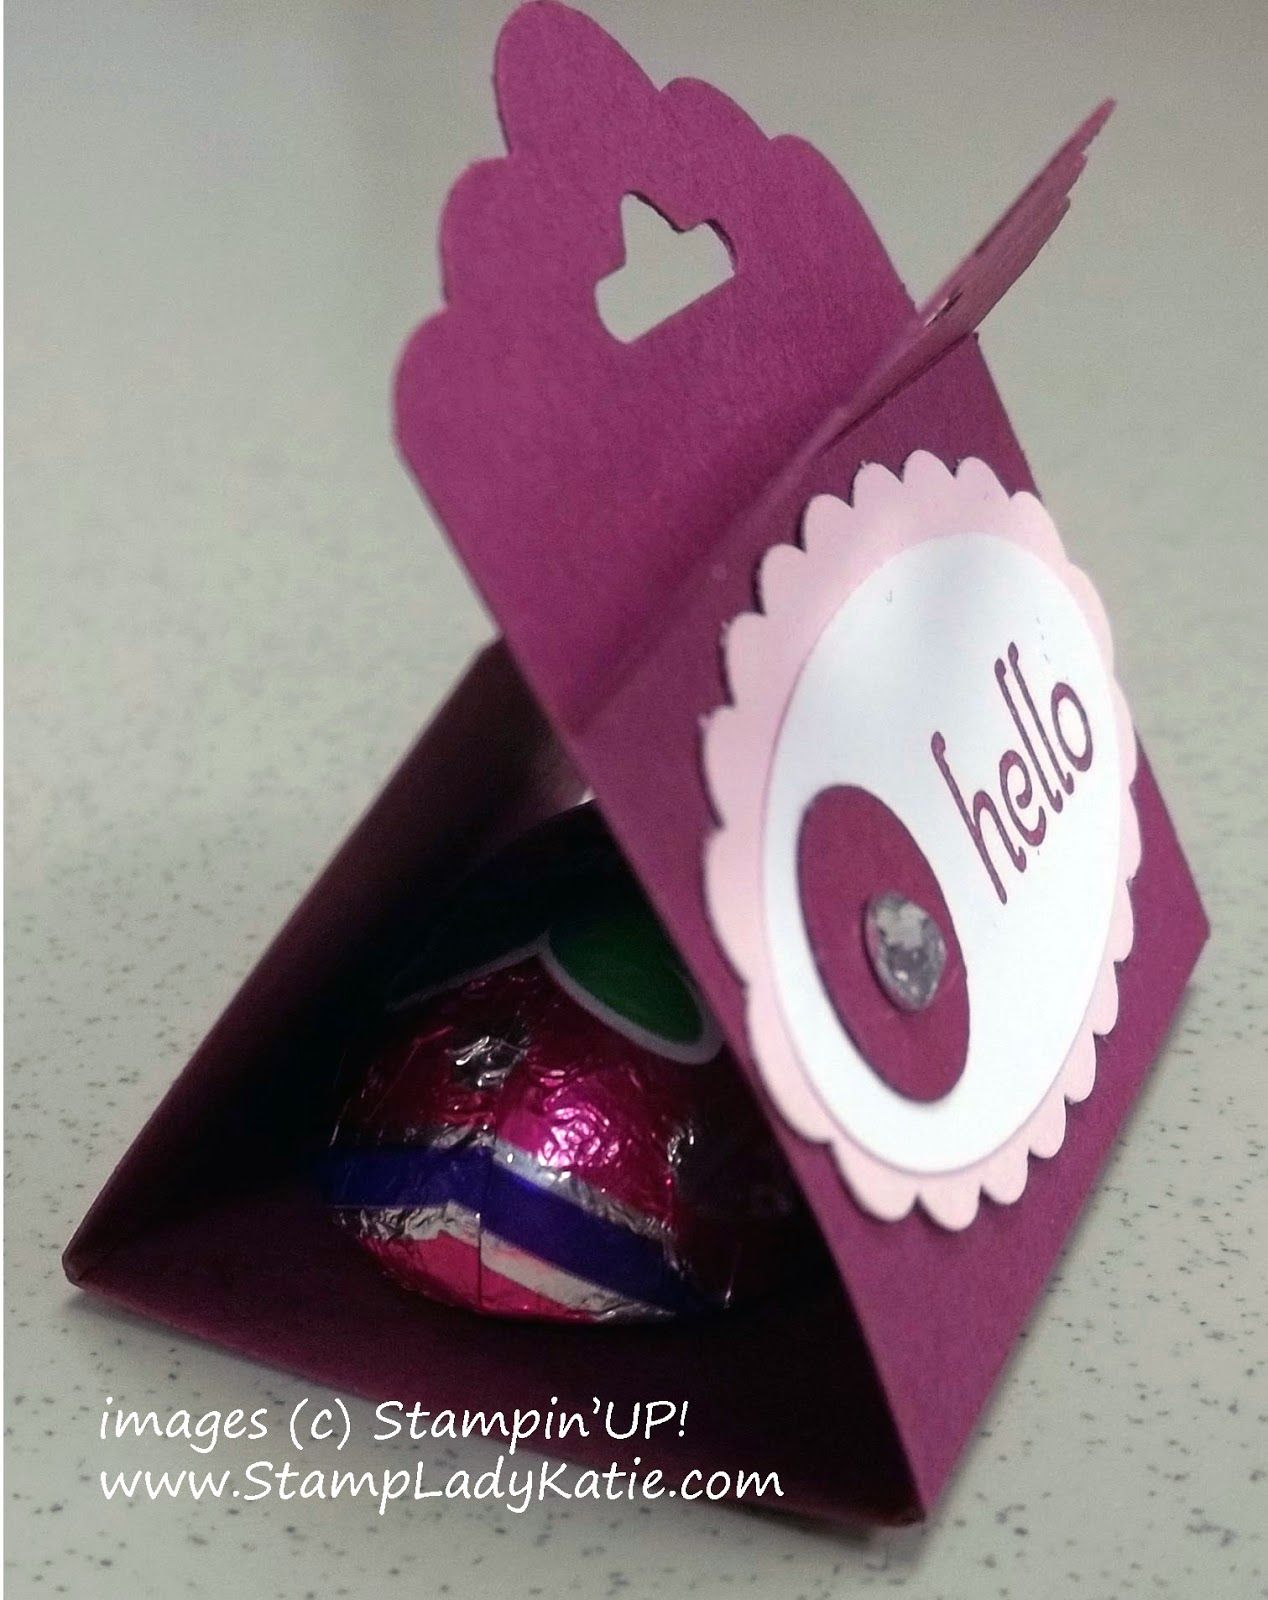 Tag+Punch+Candy+Holder2+-+byStampLadyKatie.jpg (1268×1600)